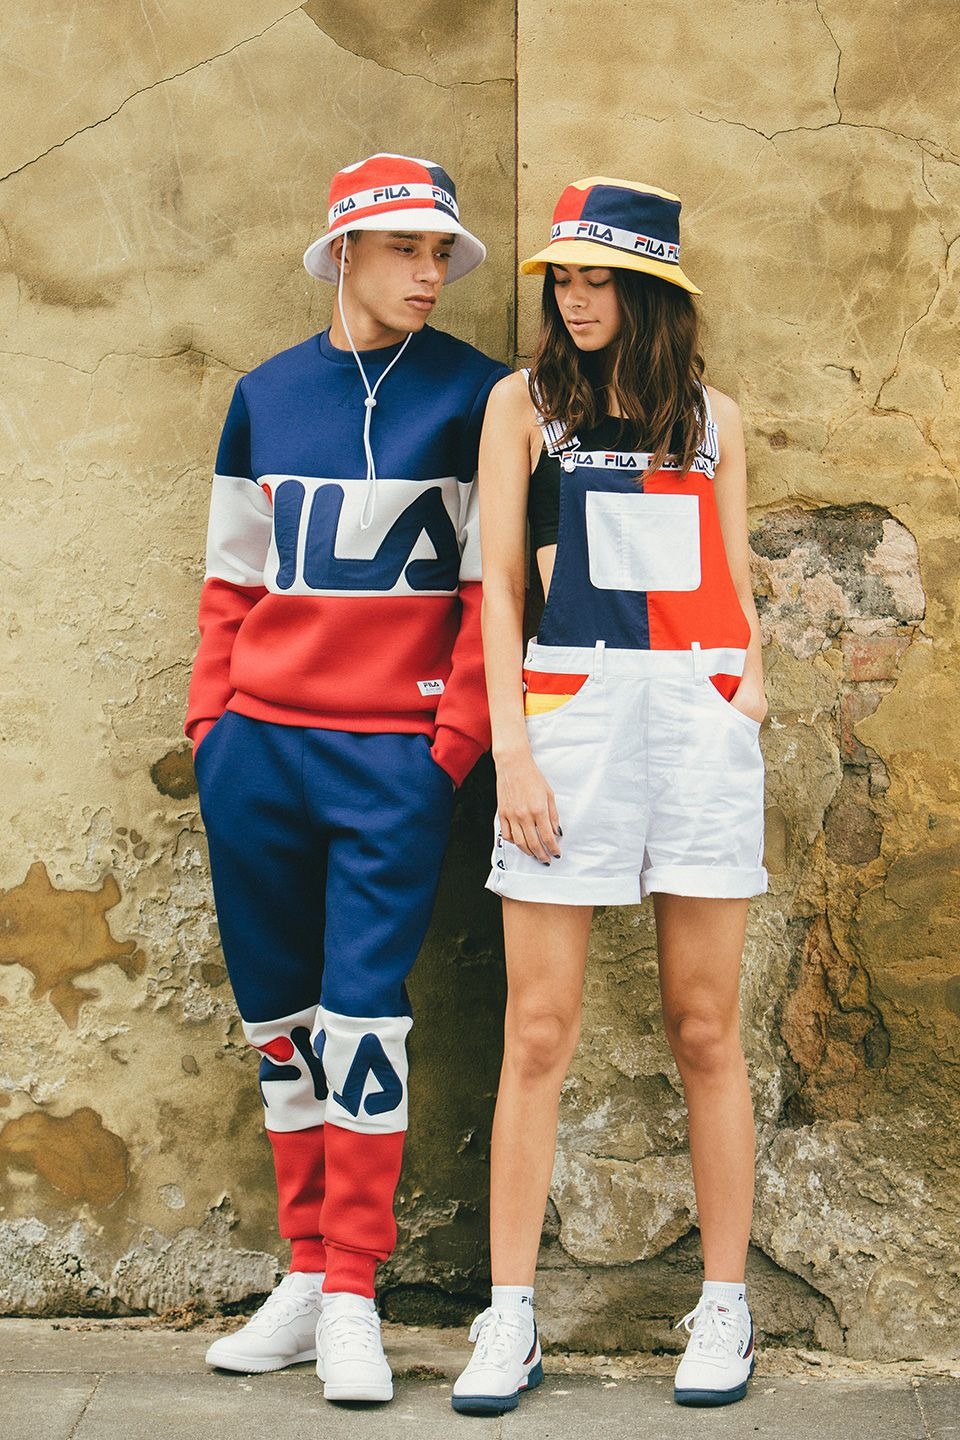 FILA Spring/Summer 2016 Collection | A T T I R E | Fashion ...